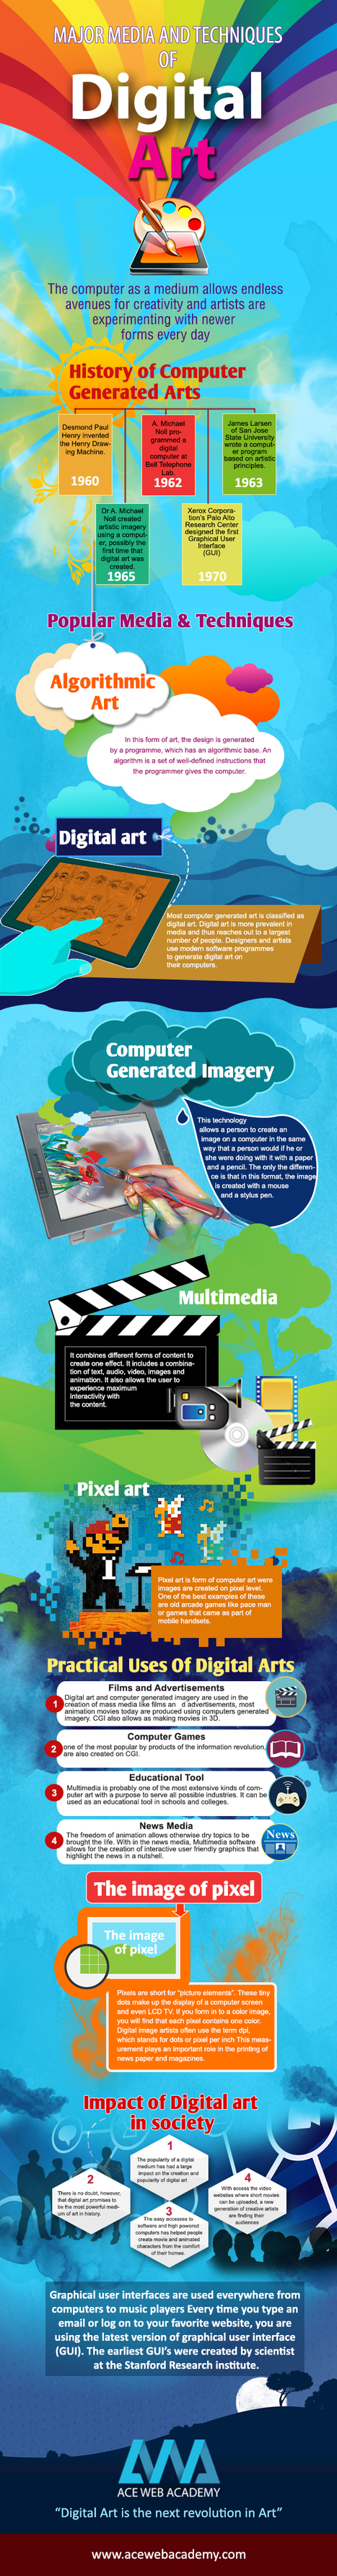 Infographics   Various Media and Techniques of Digital Art   Ace Blog   Acewebacademy   Scoop.it